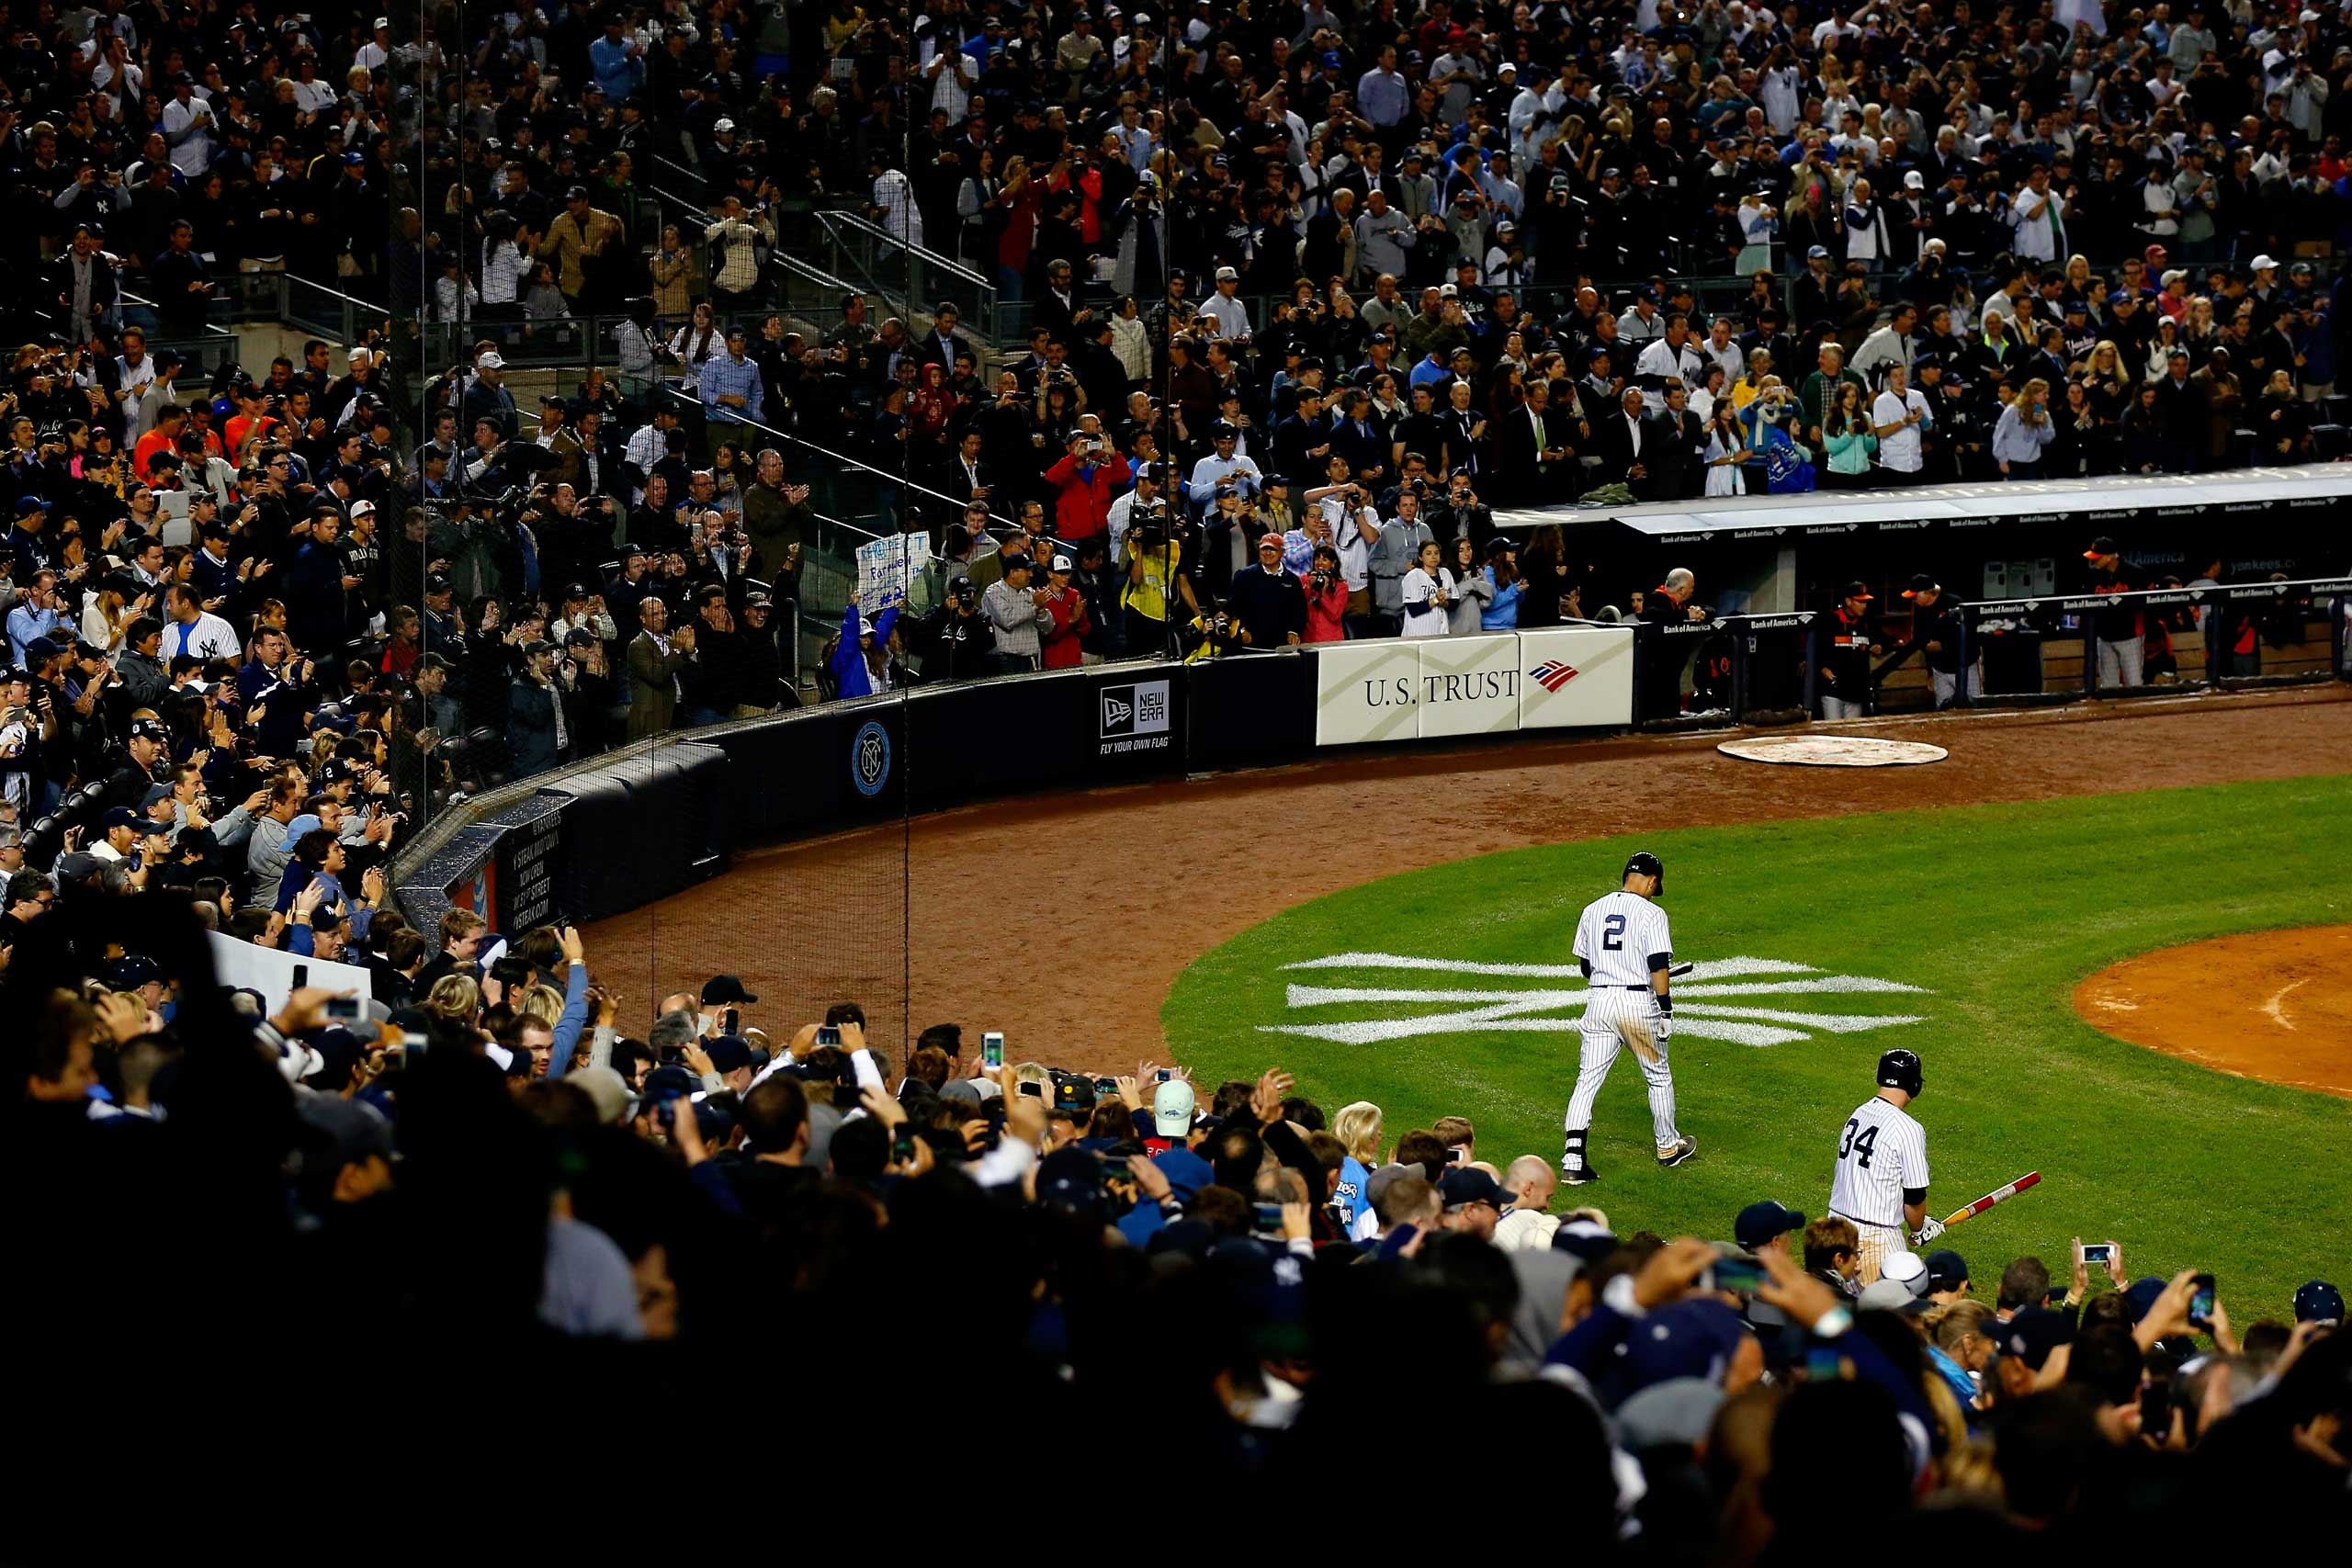 Derek Jeter walks to the plate against the Baltimore Orioles during a game at Yankee Stadium on Sept. 25, 2014.